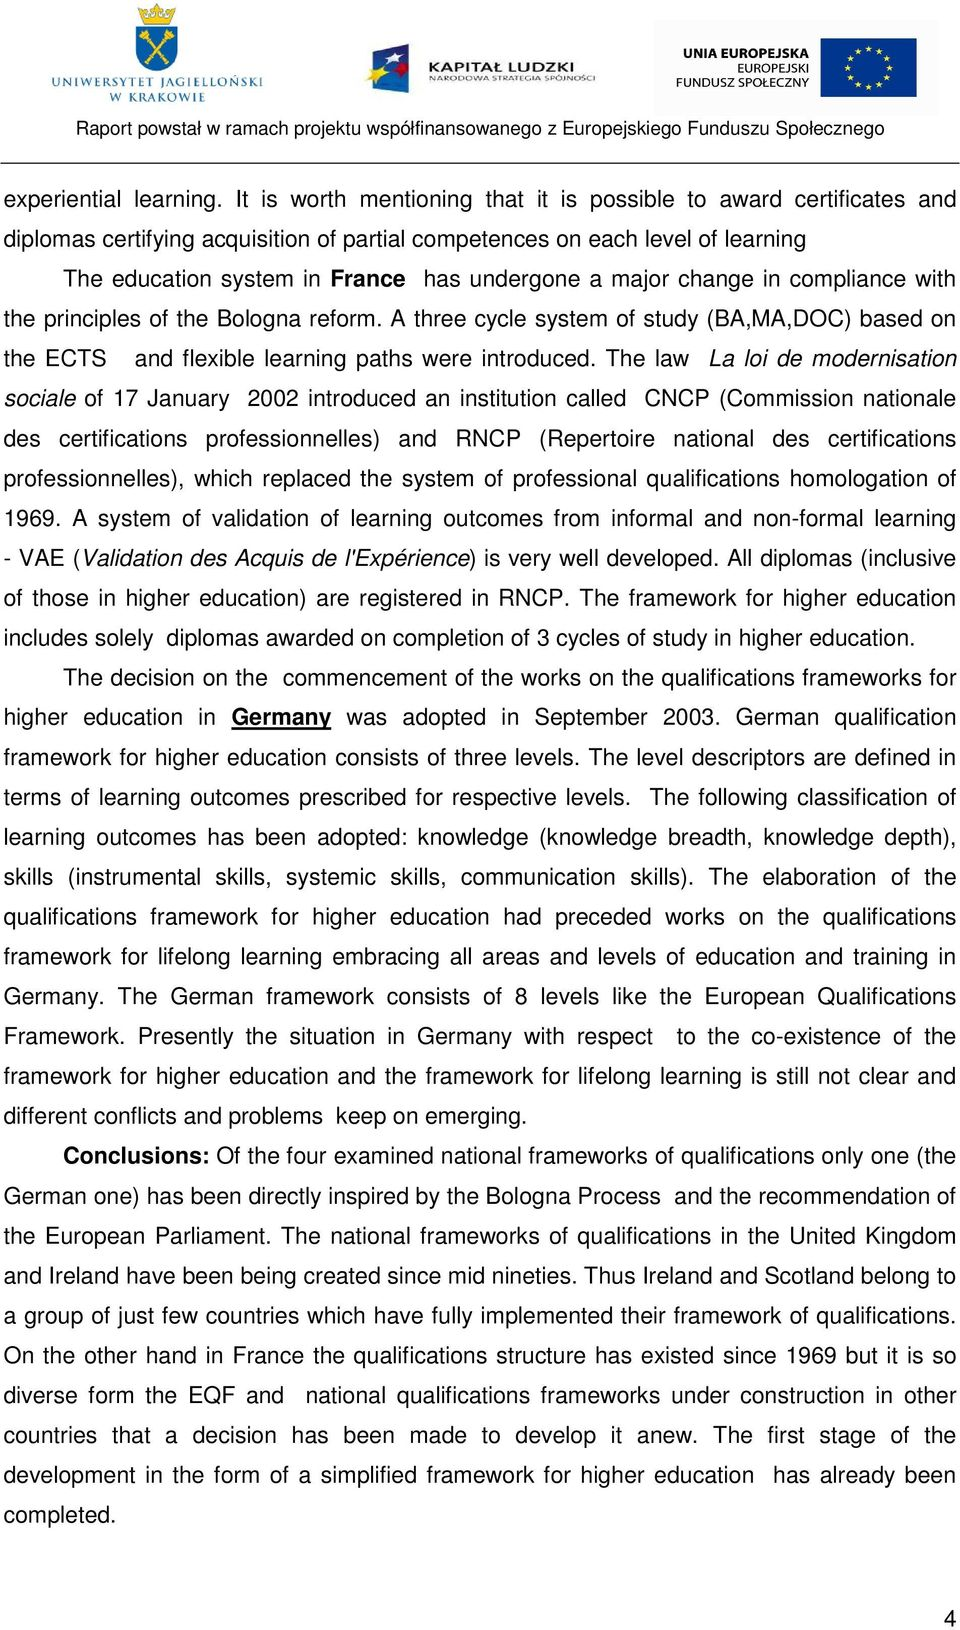 major change in compliance with the principles of the Bologna reform. A three cycle system of study (BA,MA,DOC) based on the ECTS and flexible learning paths were introduced.